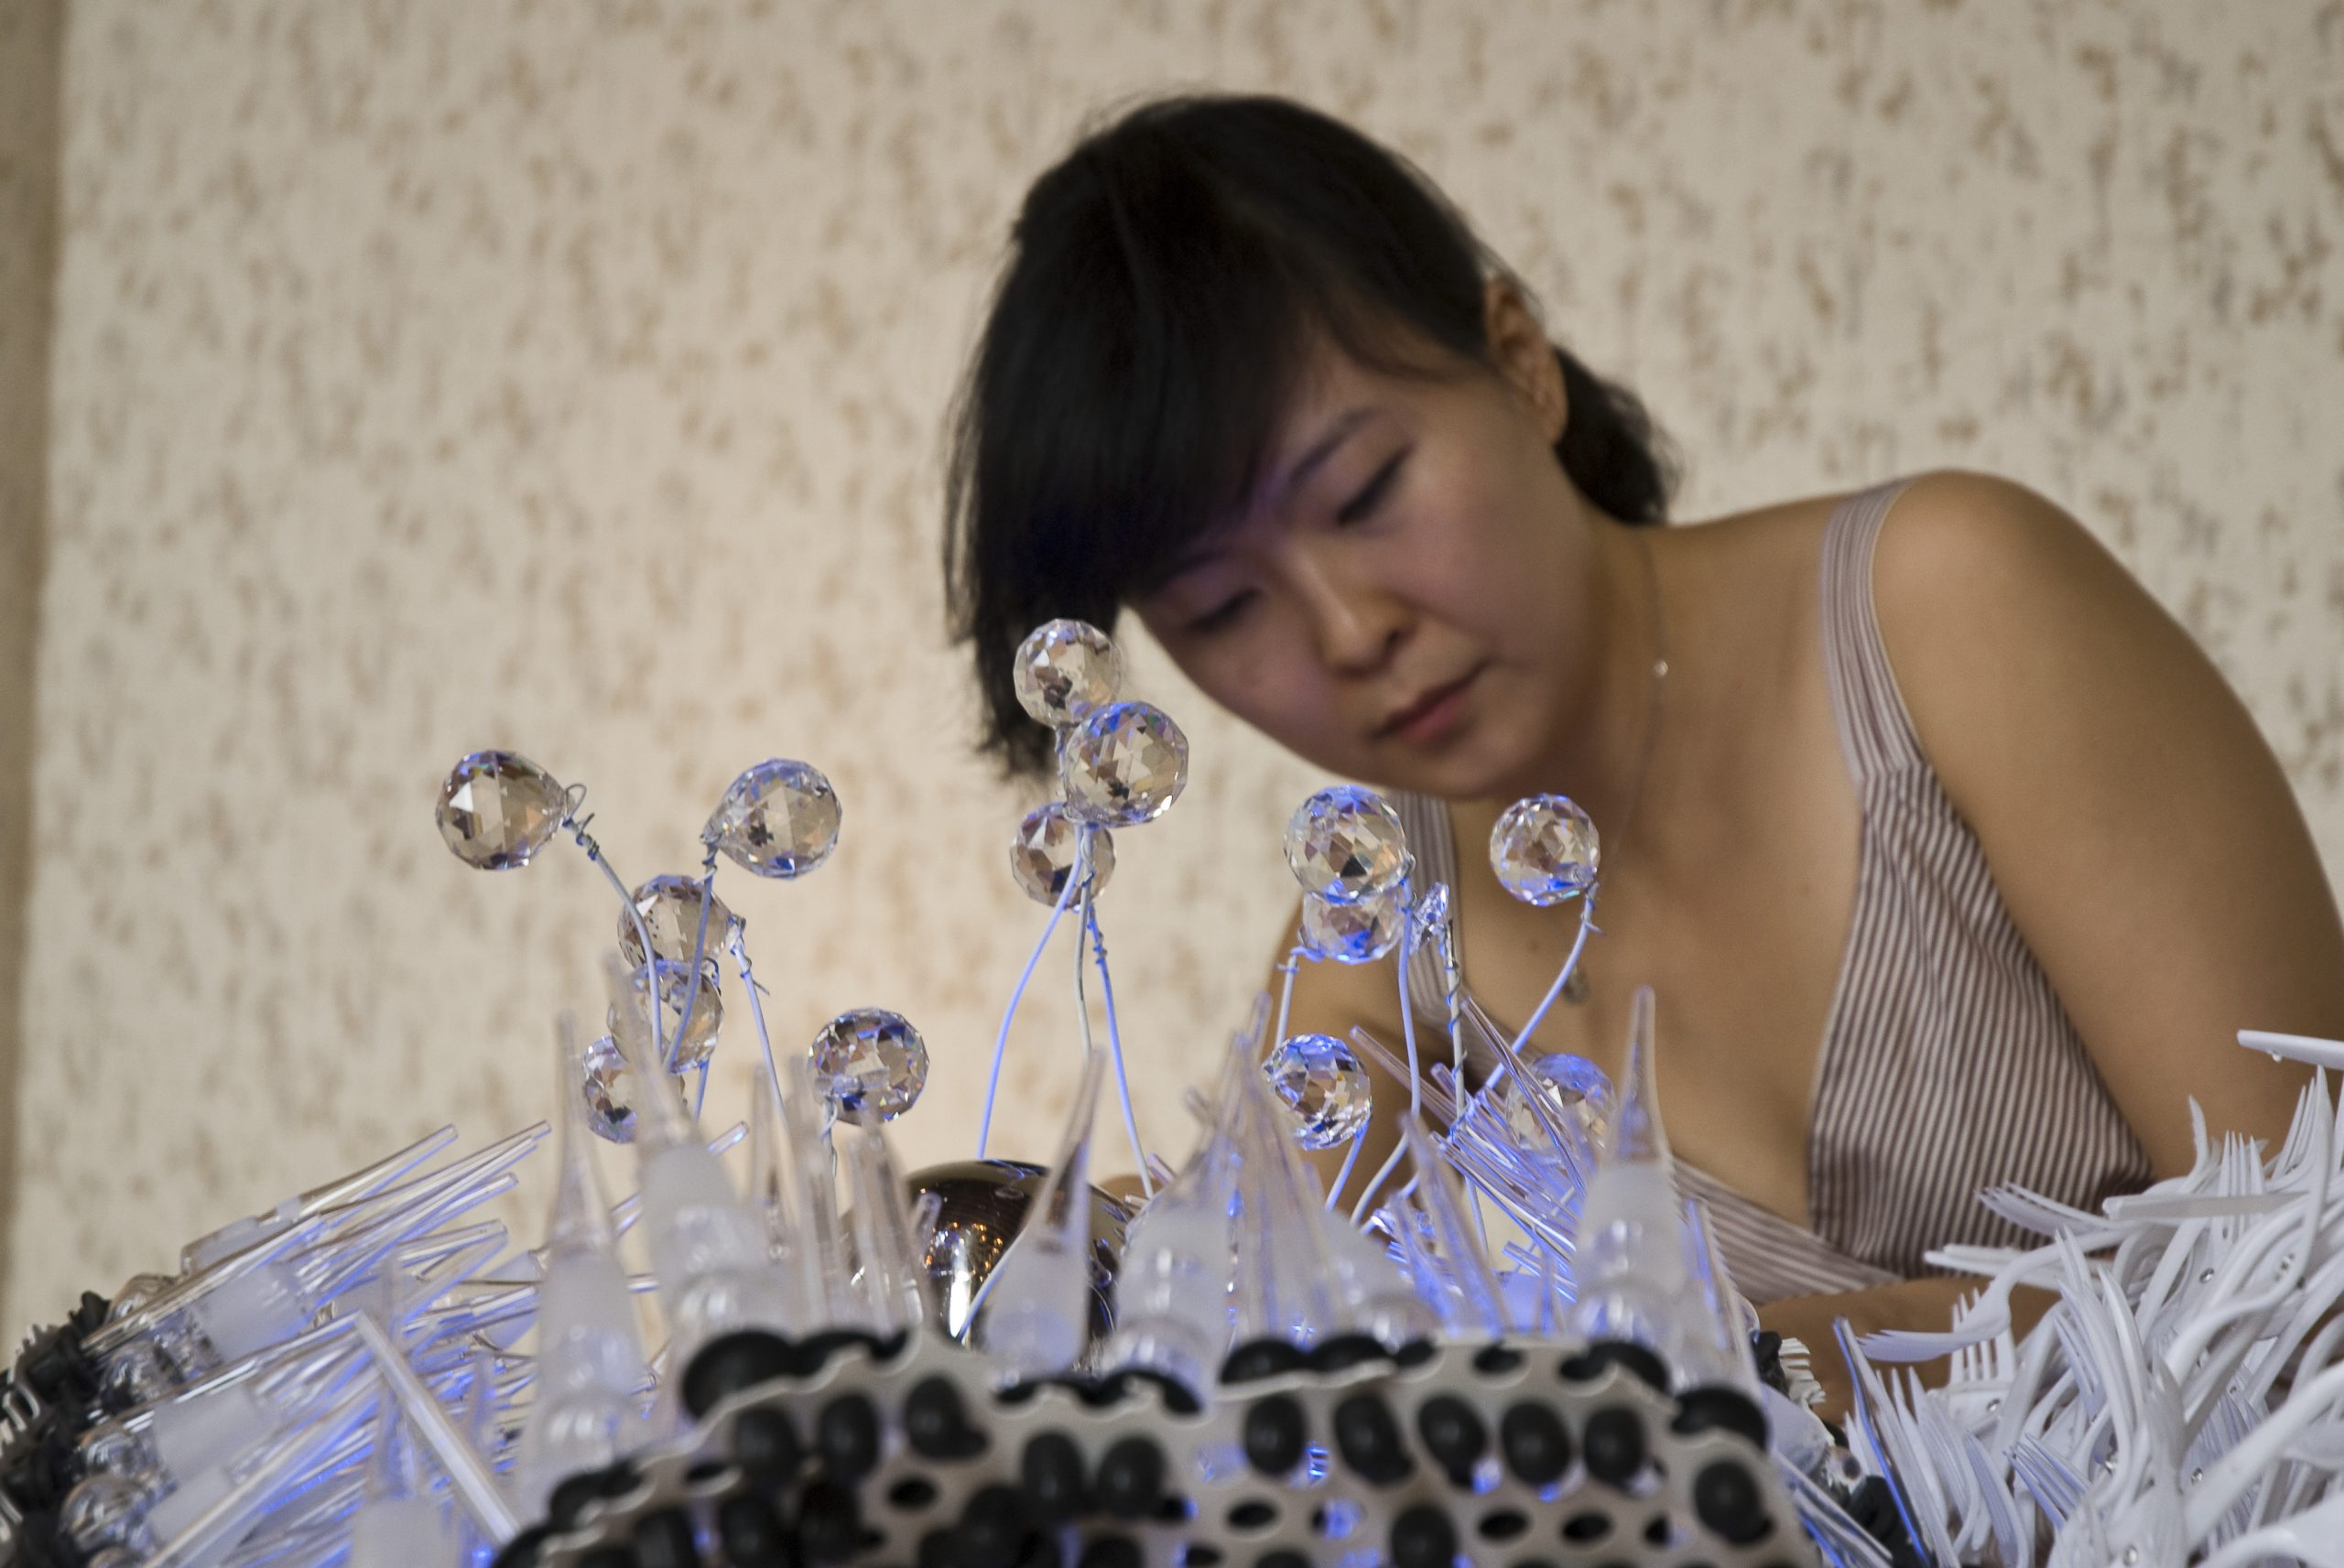 Soyeon Cho installing his work at Glasstress 2009